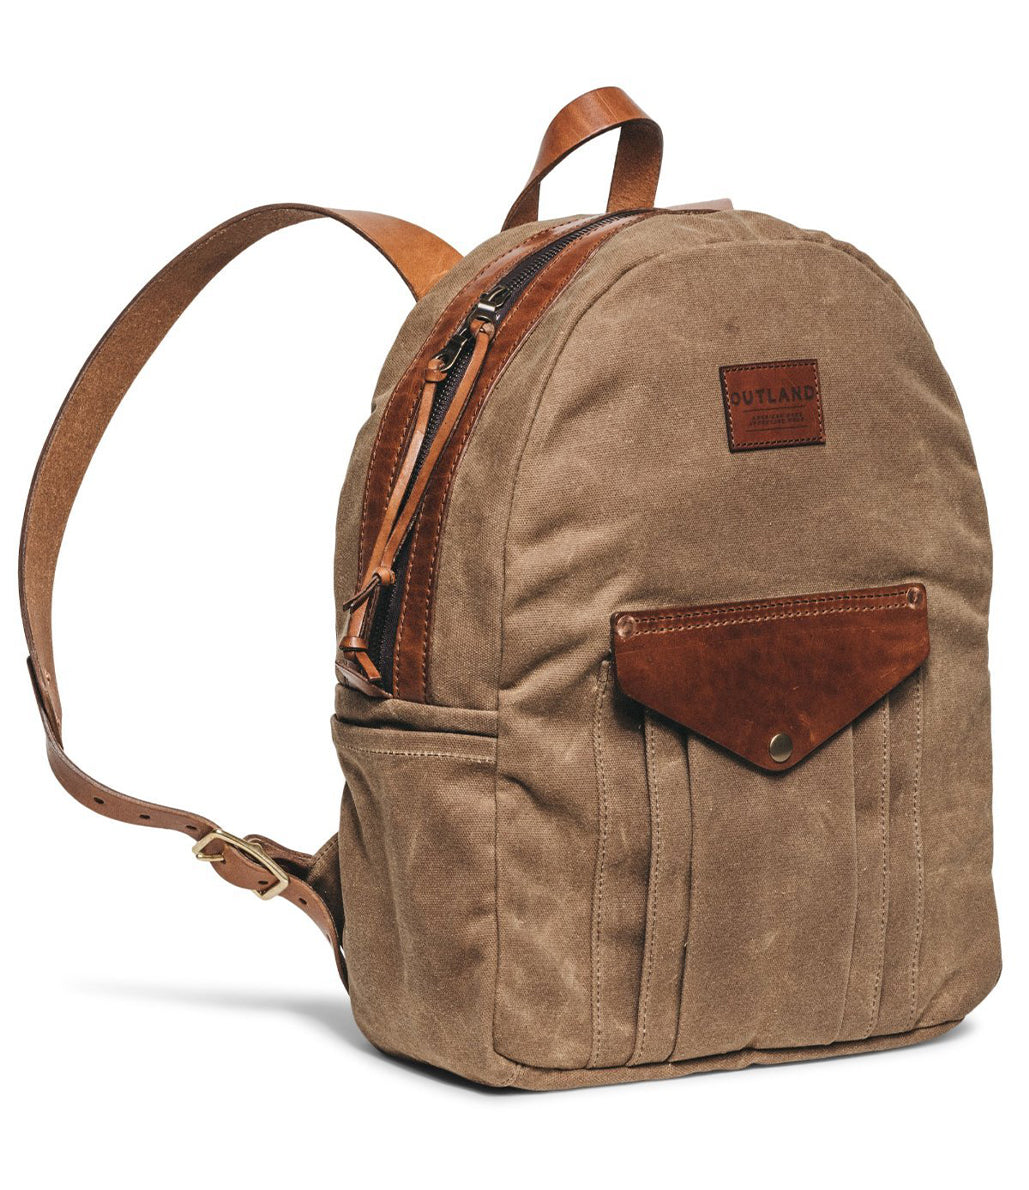 LAND Backpack - Pre Order = Free Slim Wallet